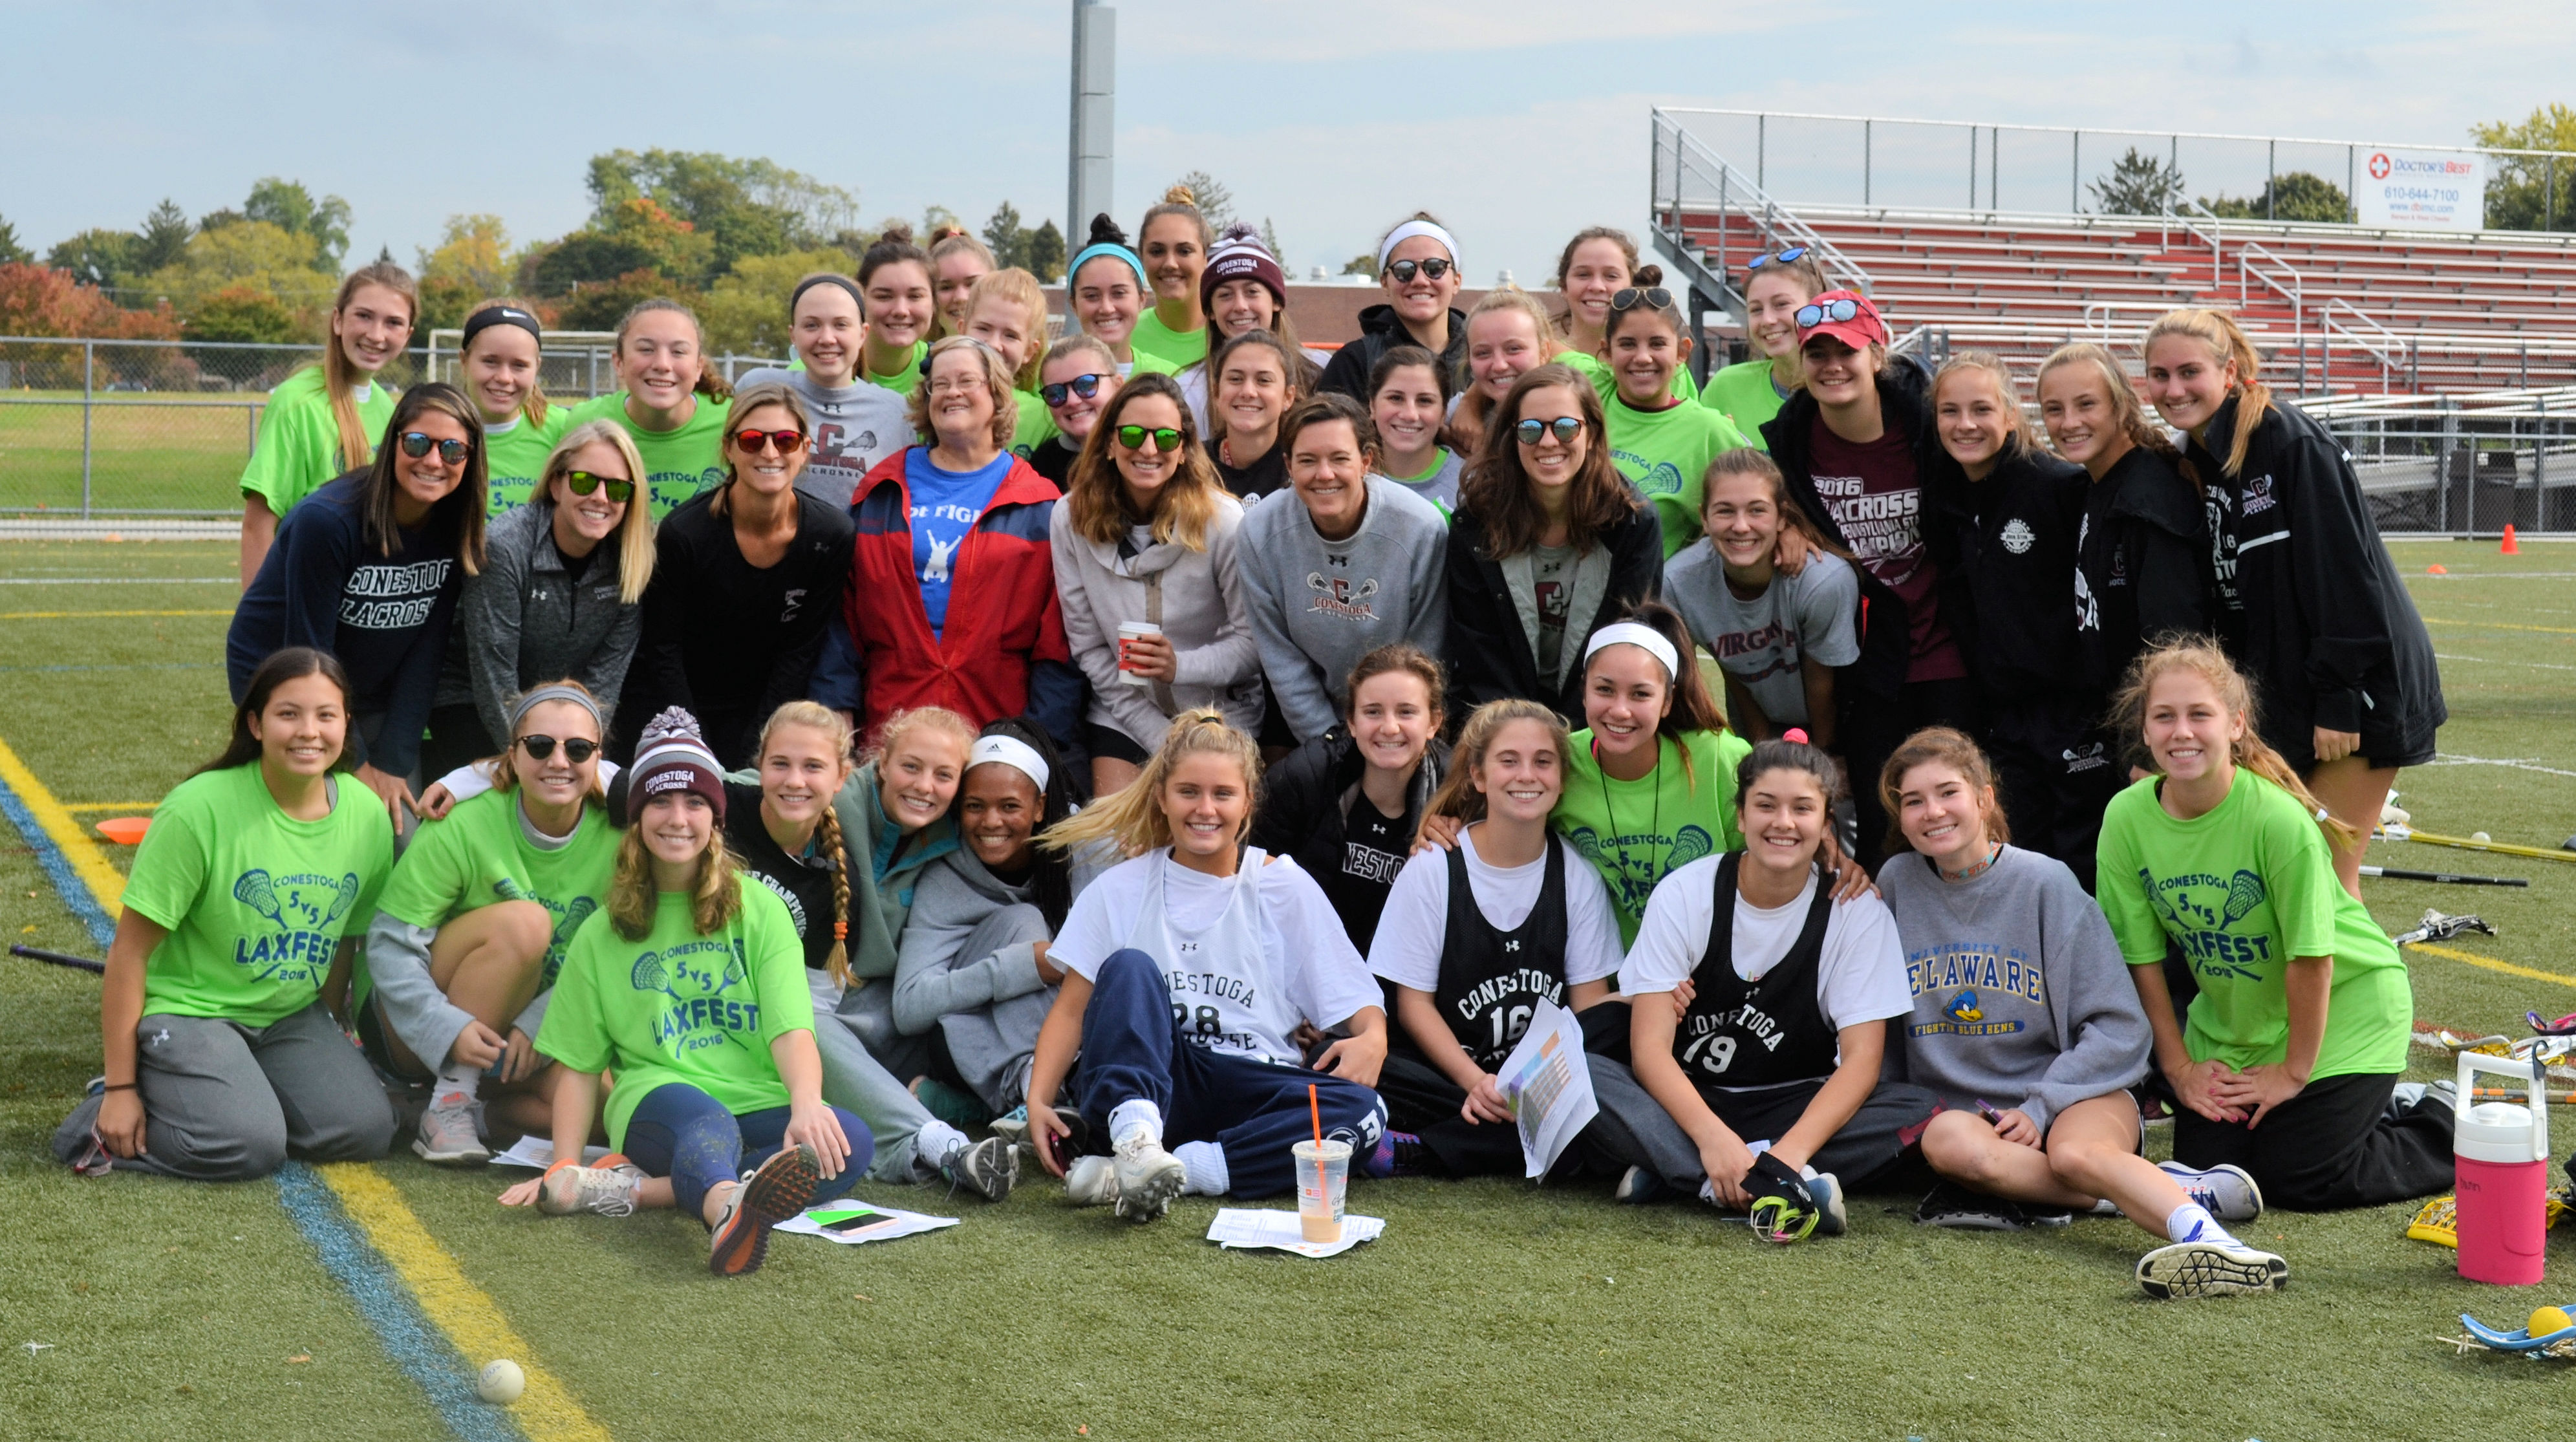 @stogagirlslax 5v5 helps raise almost $15K to support the Fighting Back Scholarship Program